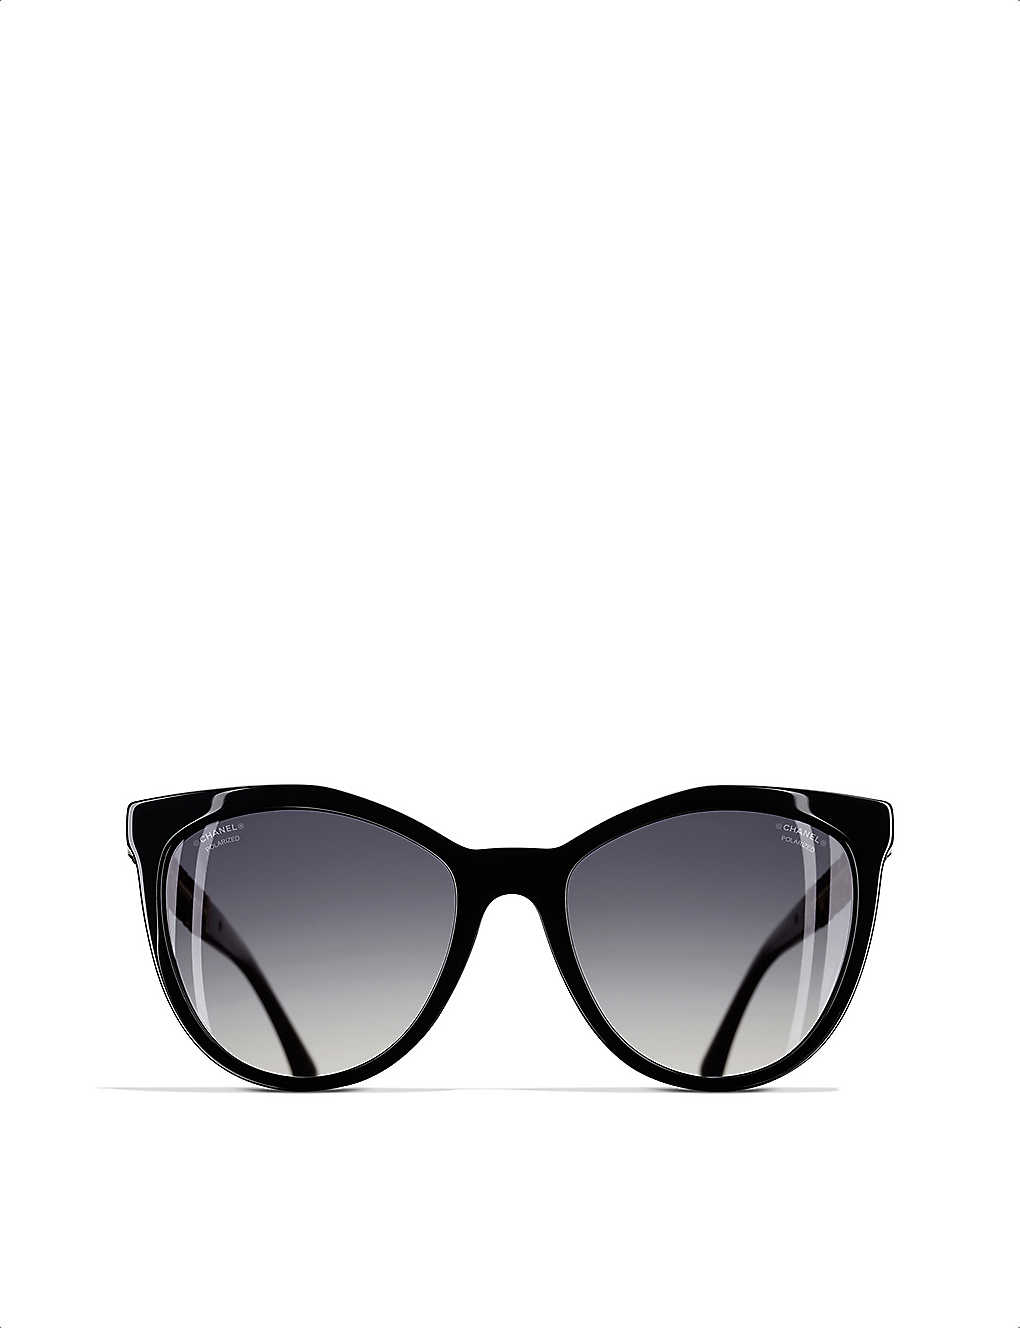 896fd9127c0 CHANEL - Cat-eye sunglasses